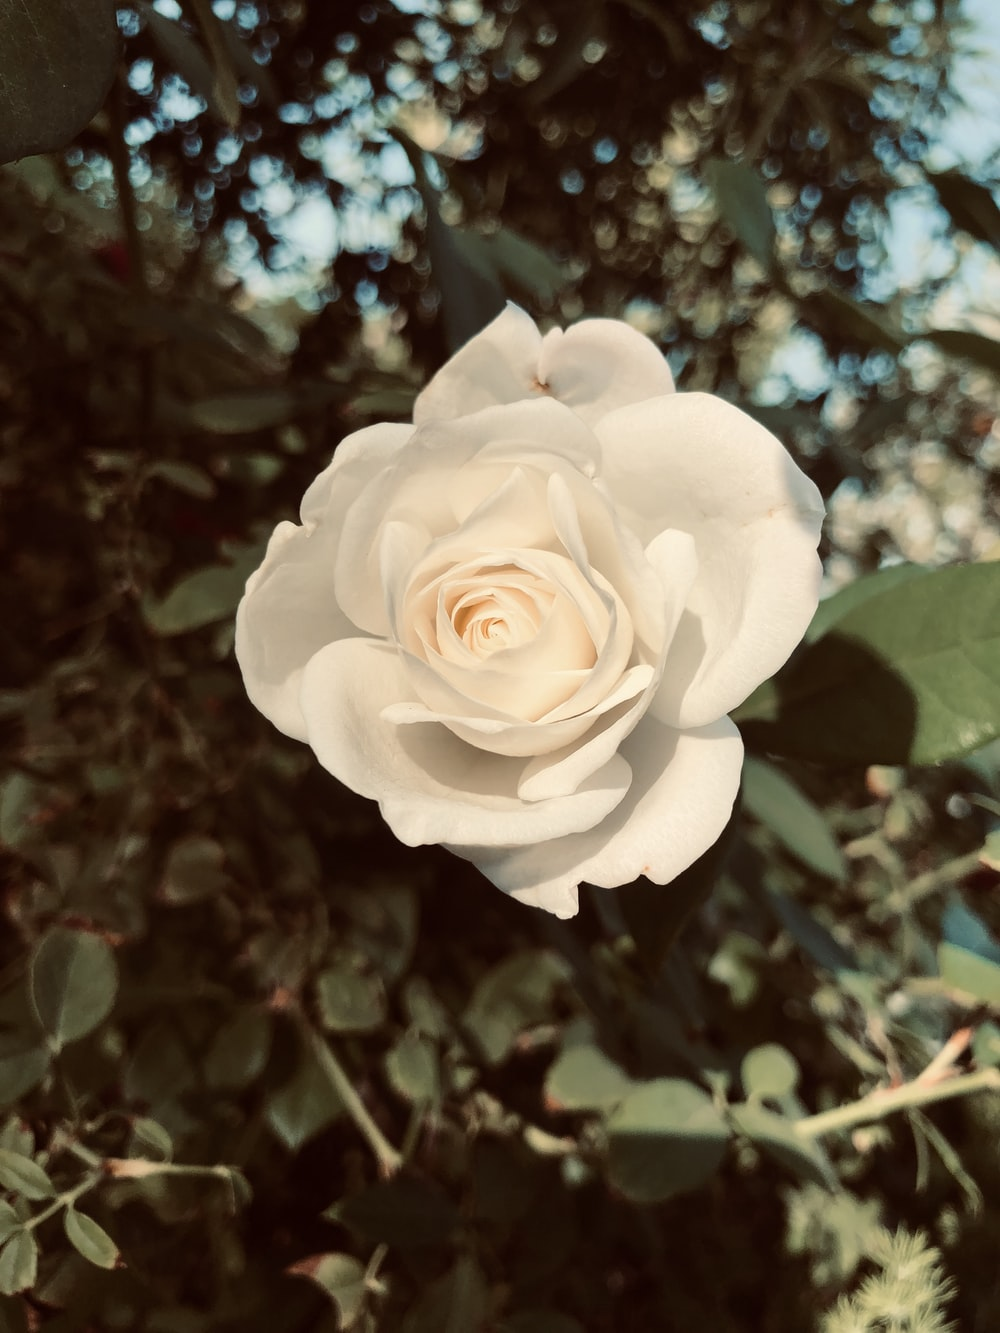 white rose in bloom during daytime